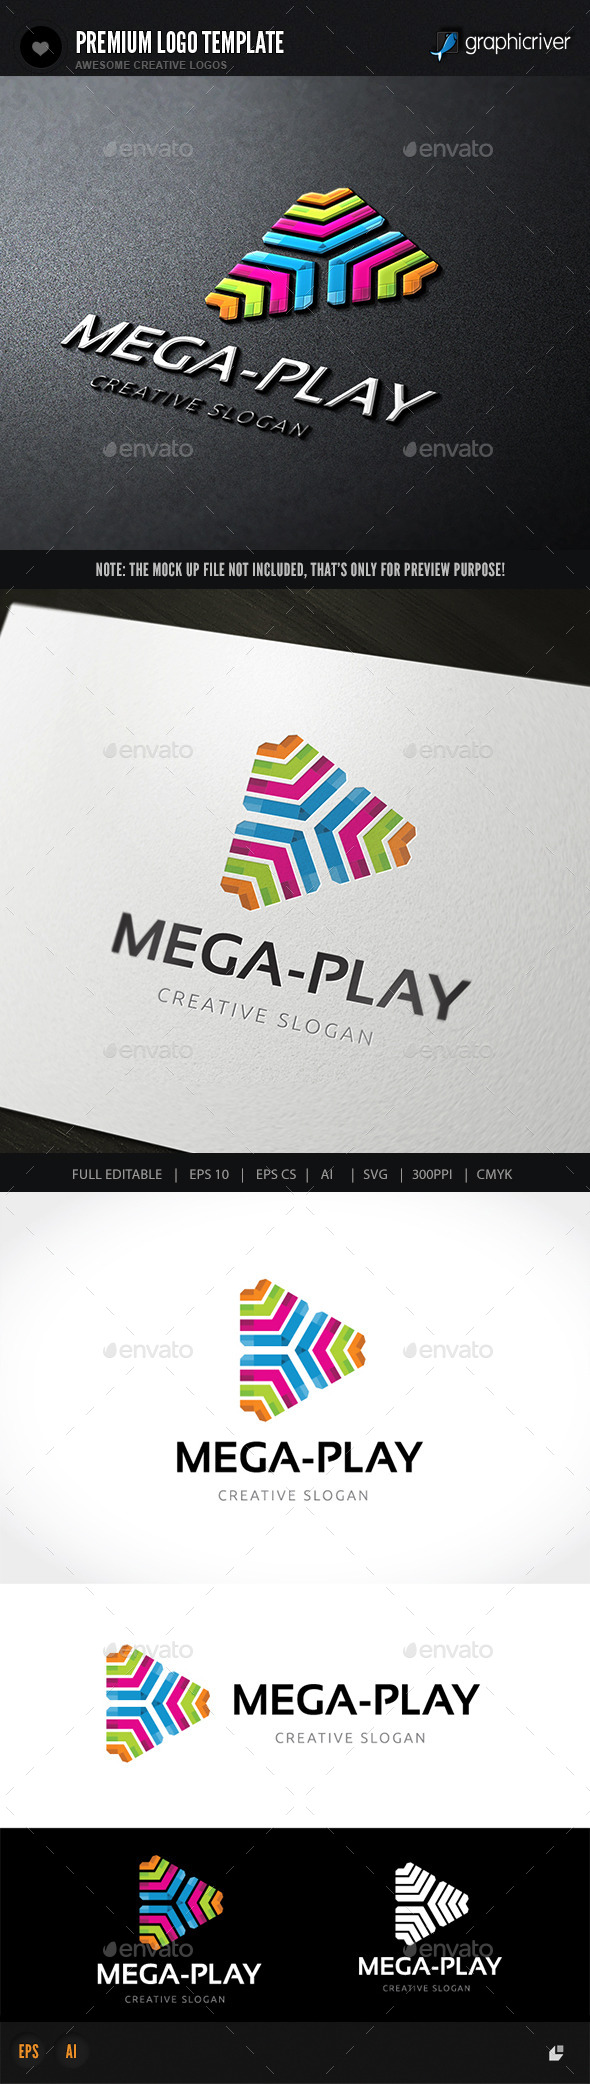 Mage Play - Abstract Logo Templates